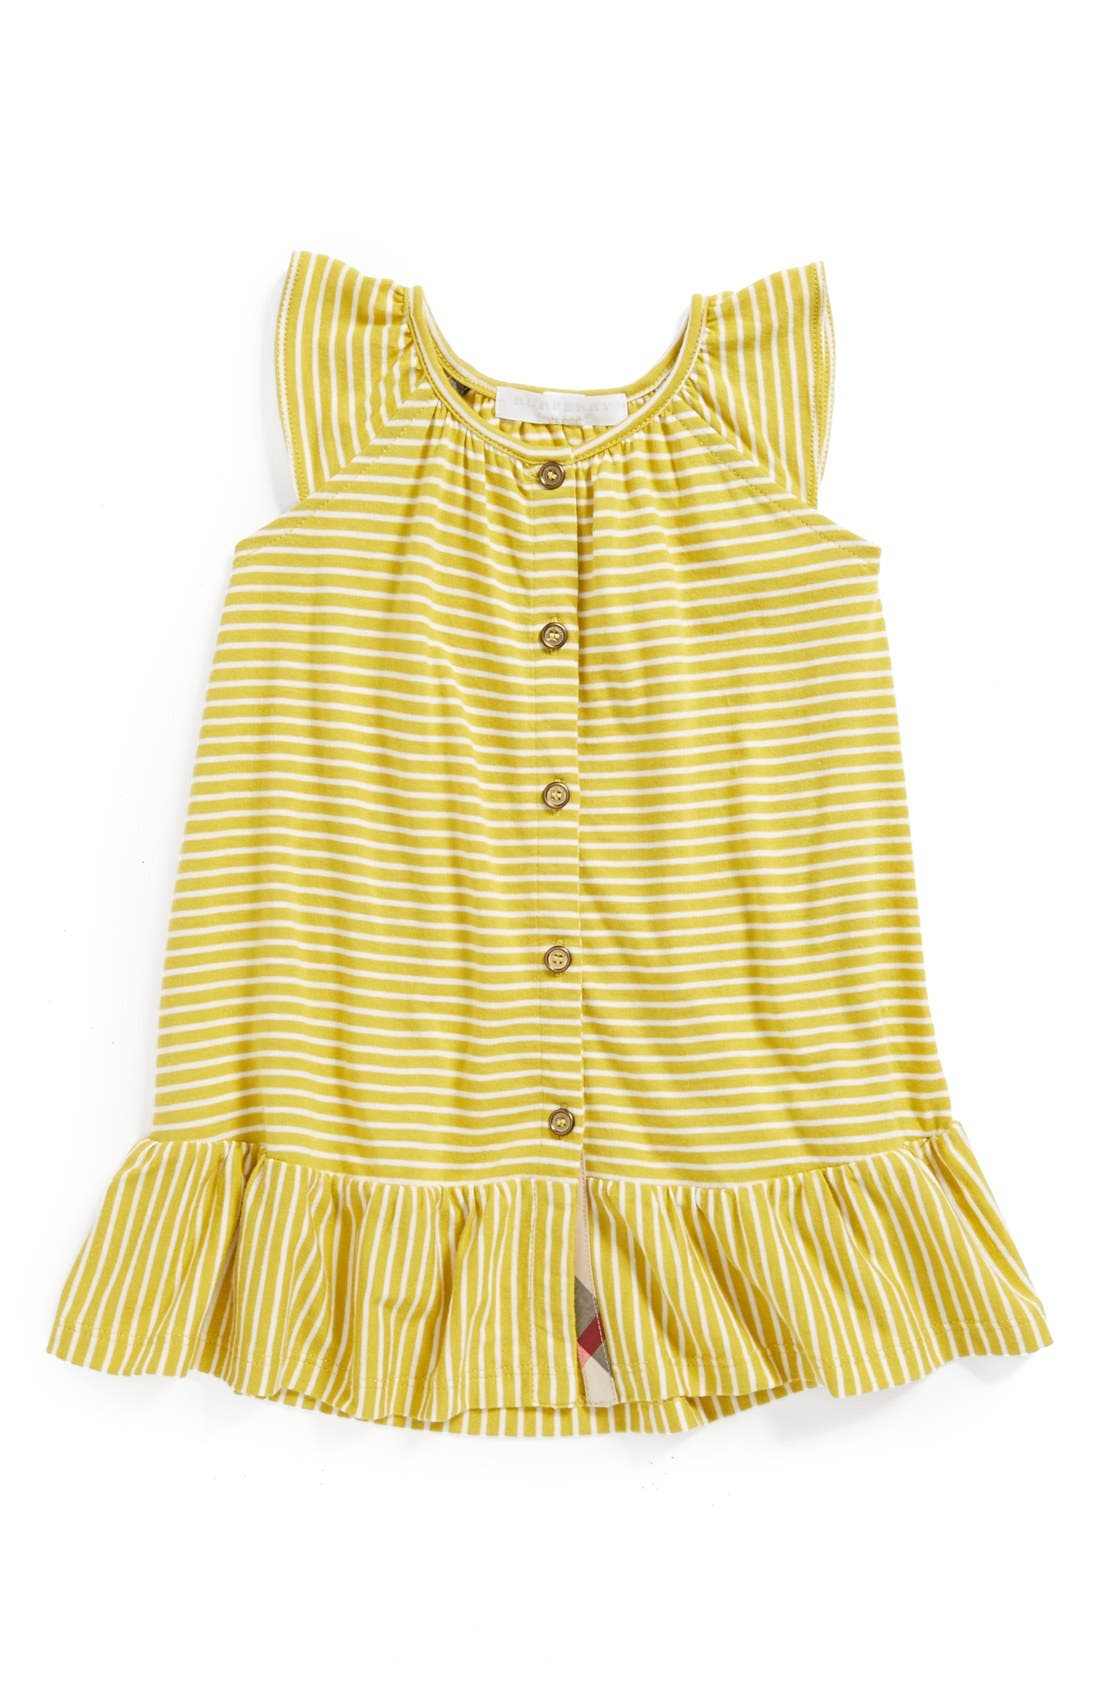 Alternate Image 1 Selected - Burberry 'Tania' Dress (Baby Girls)